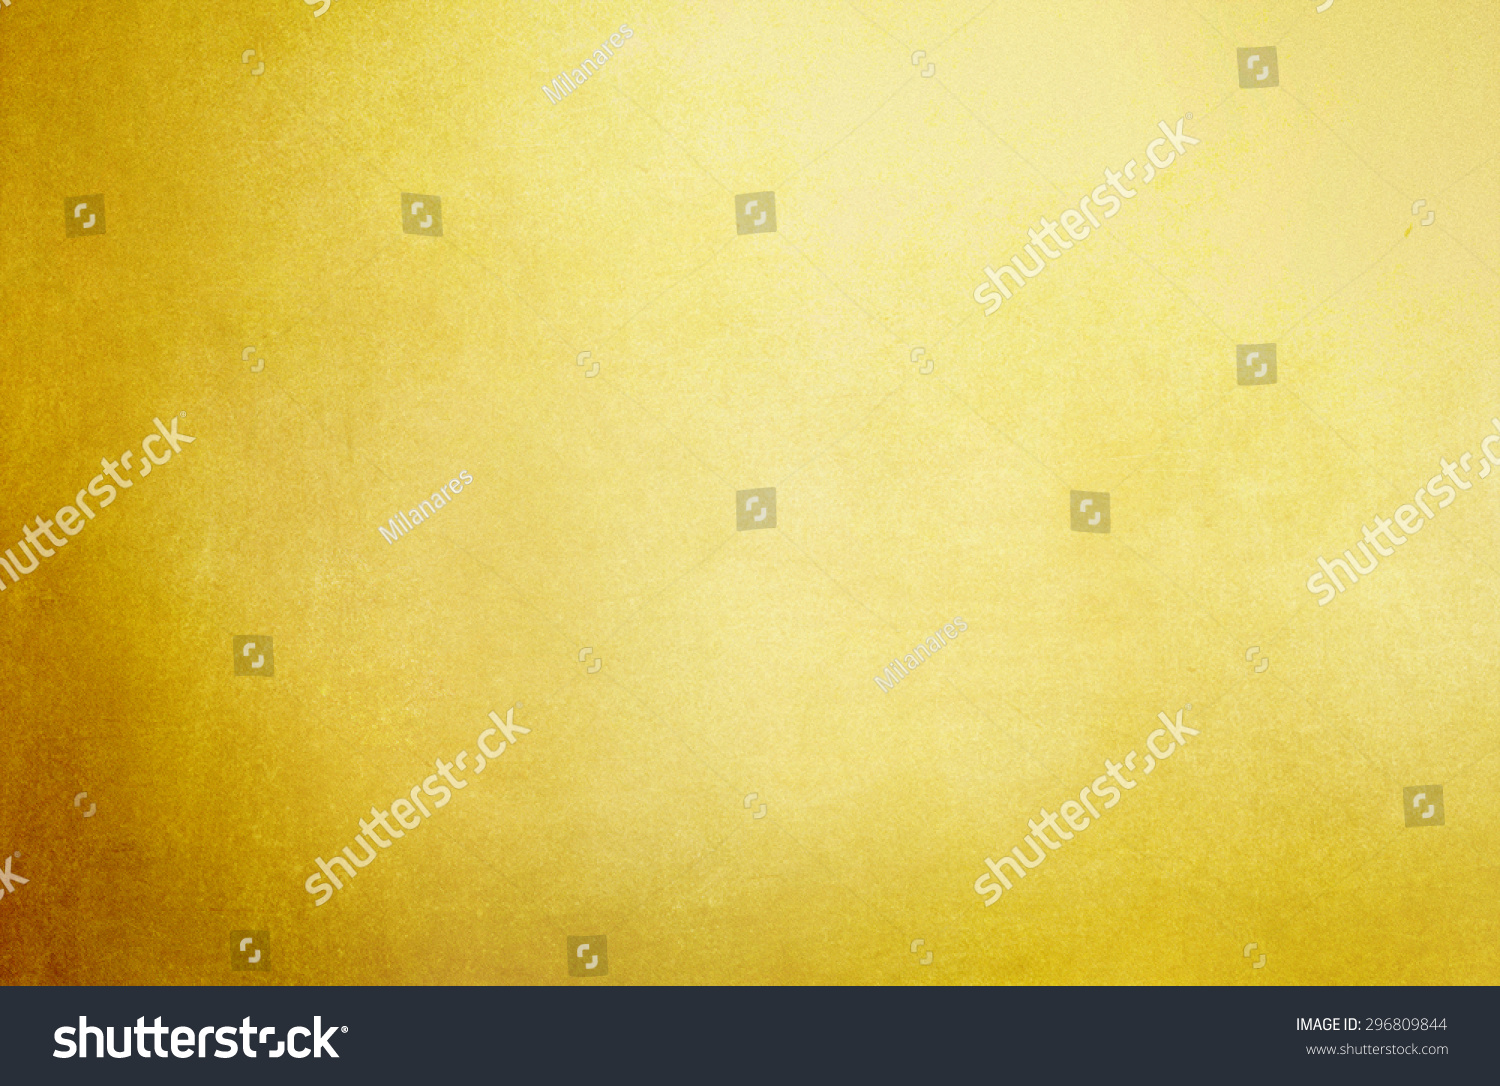 Abstract Gold Background Paper Brown Border Stock Illustration ...